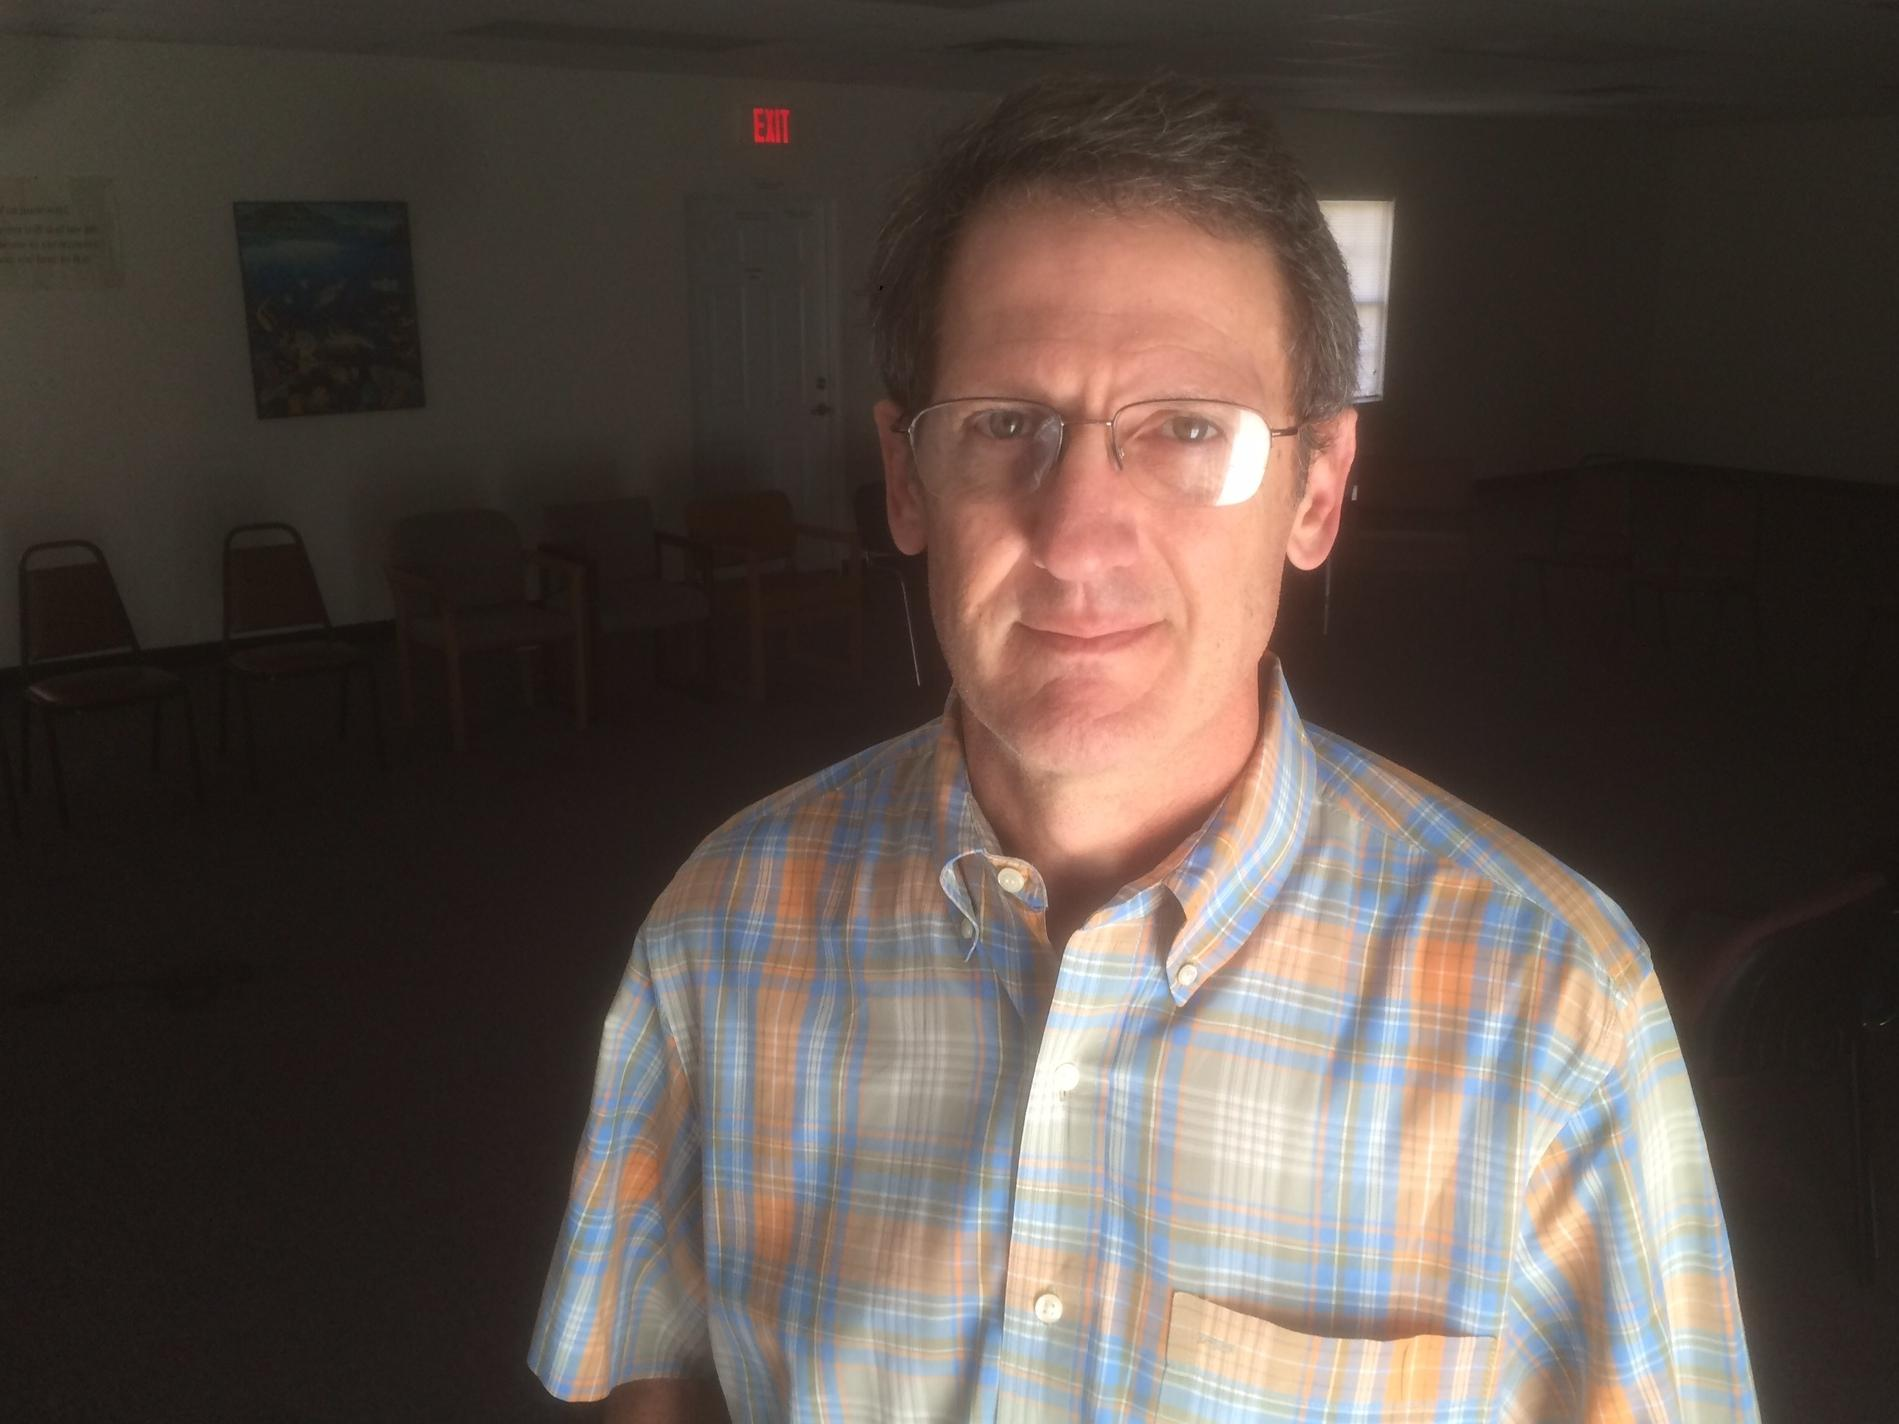 When Drug Treatment For Narcotic Addiction Never Ends Maine Public